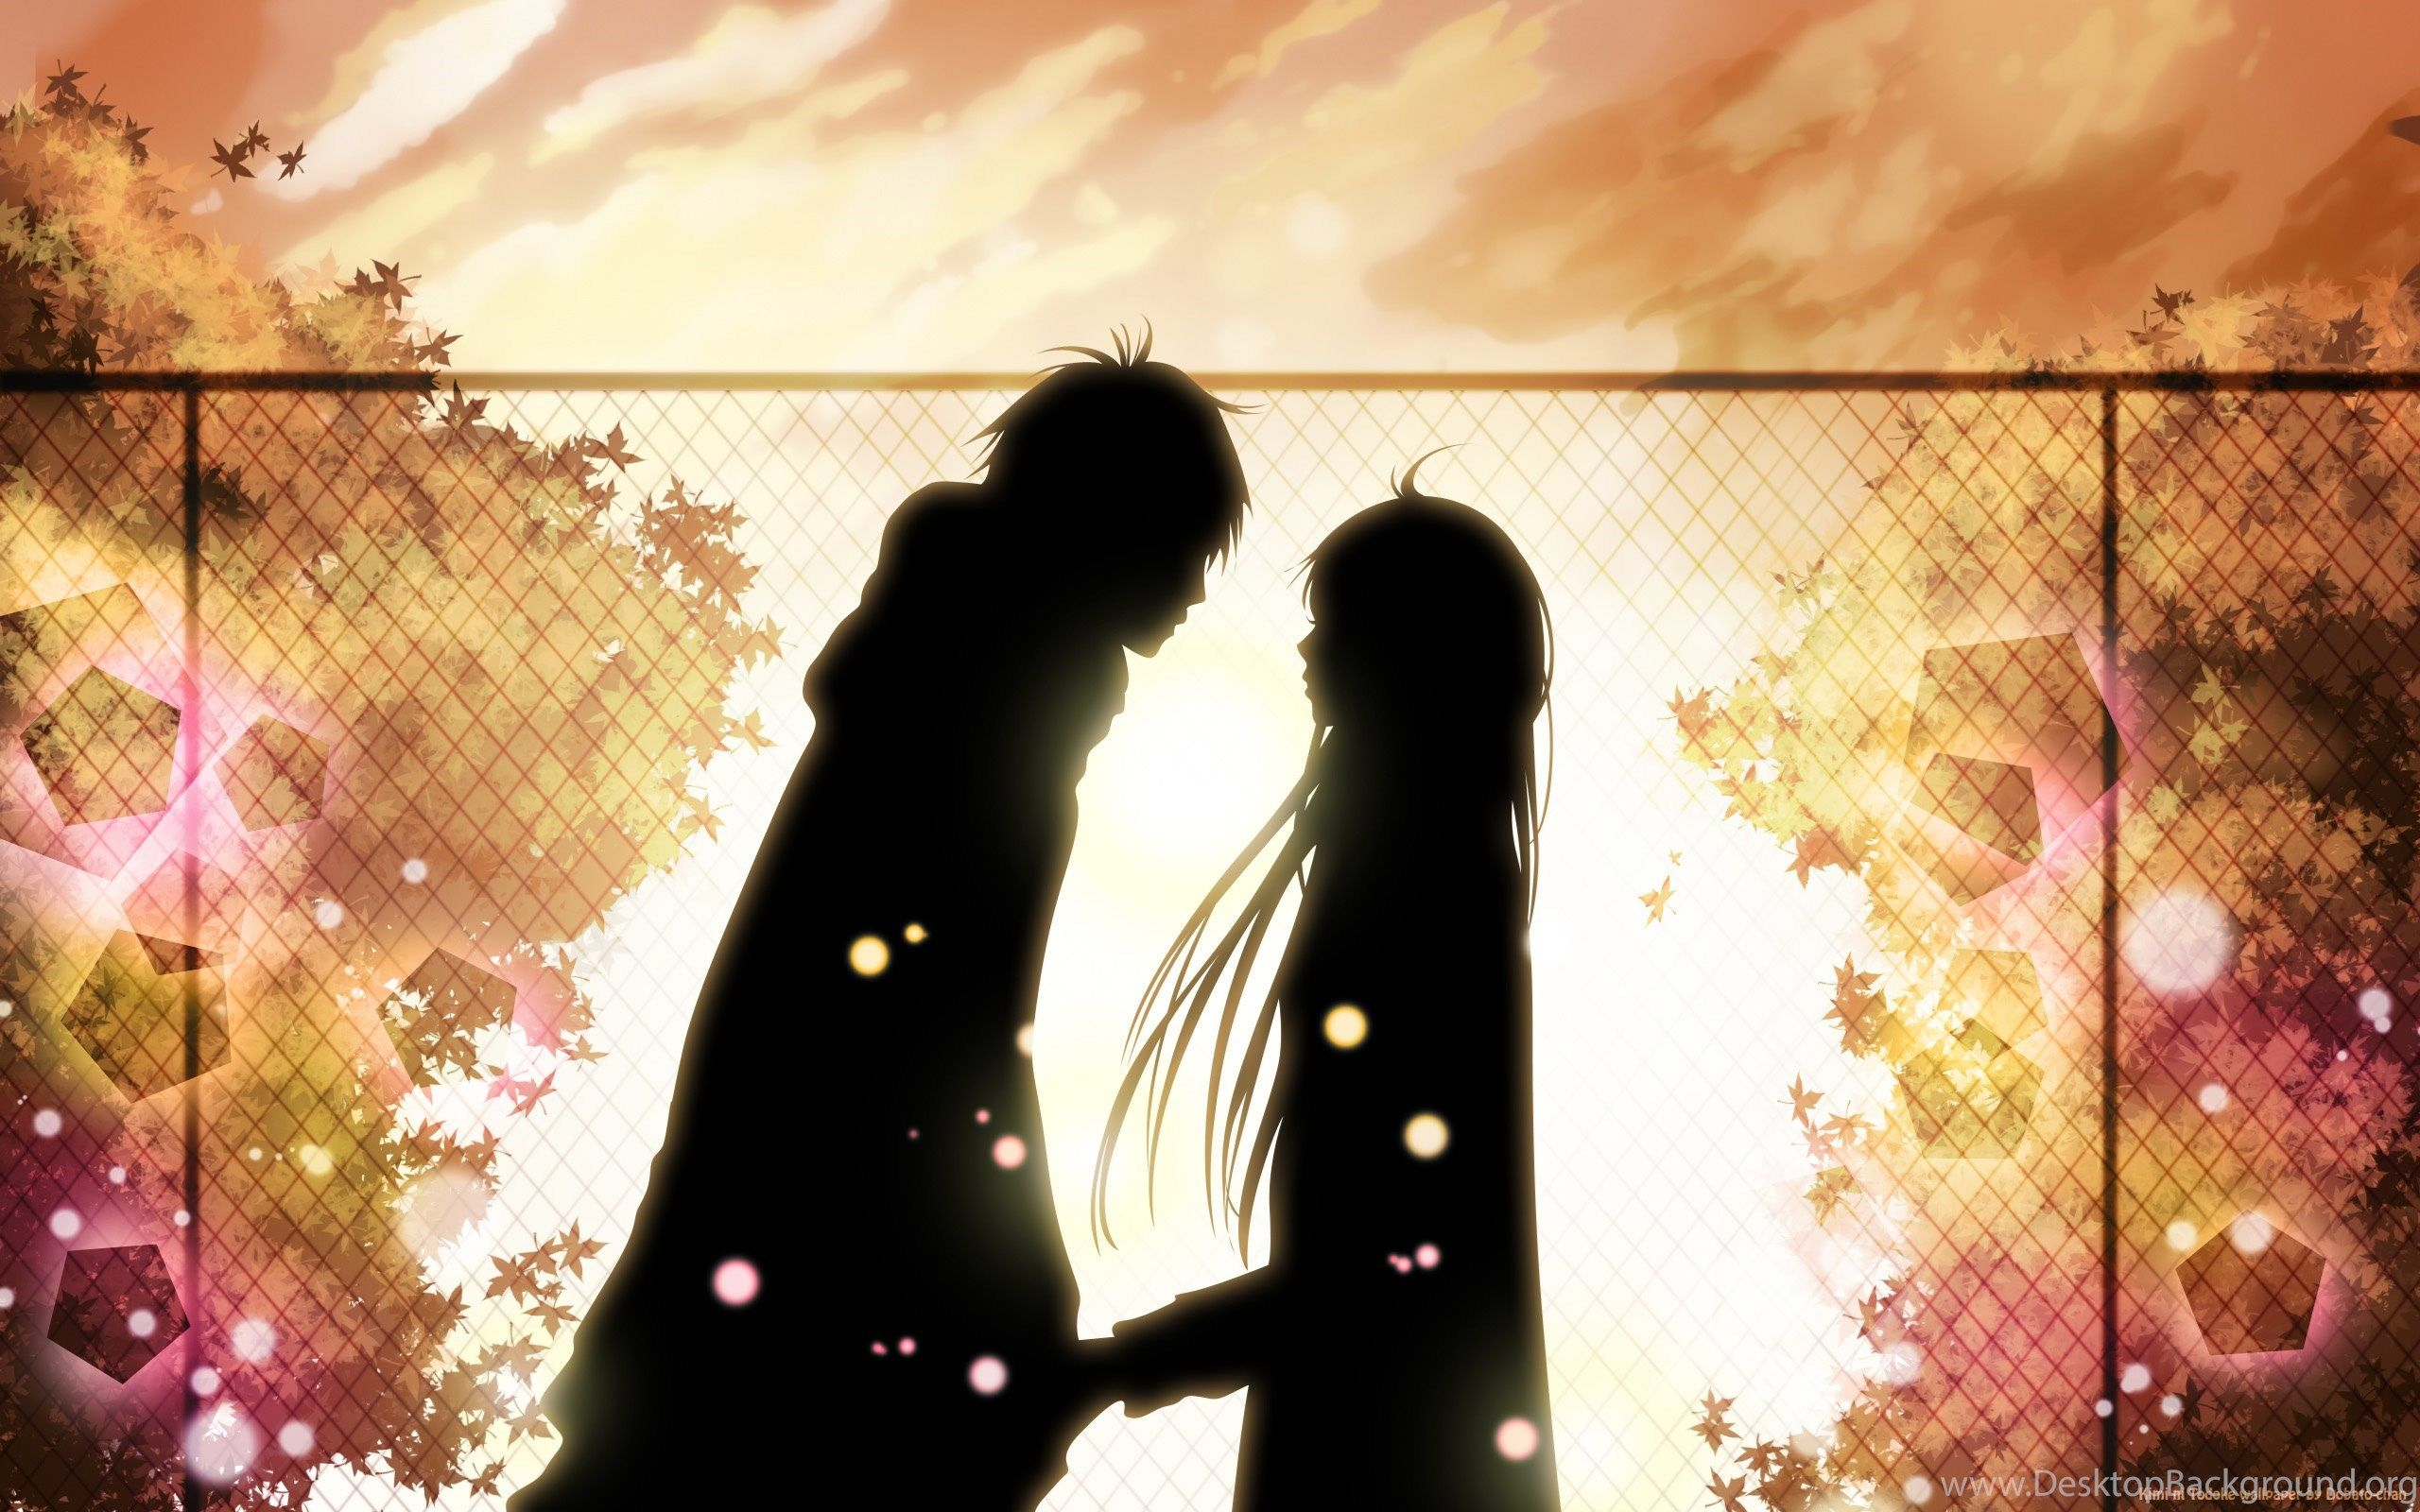 2560x1600 Romantic Anime Photos Wallpapers HD Desktop Background